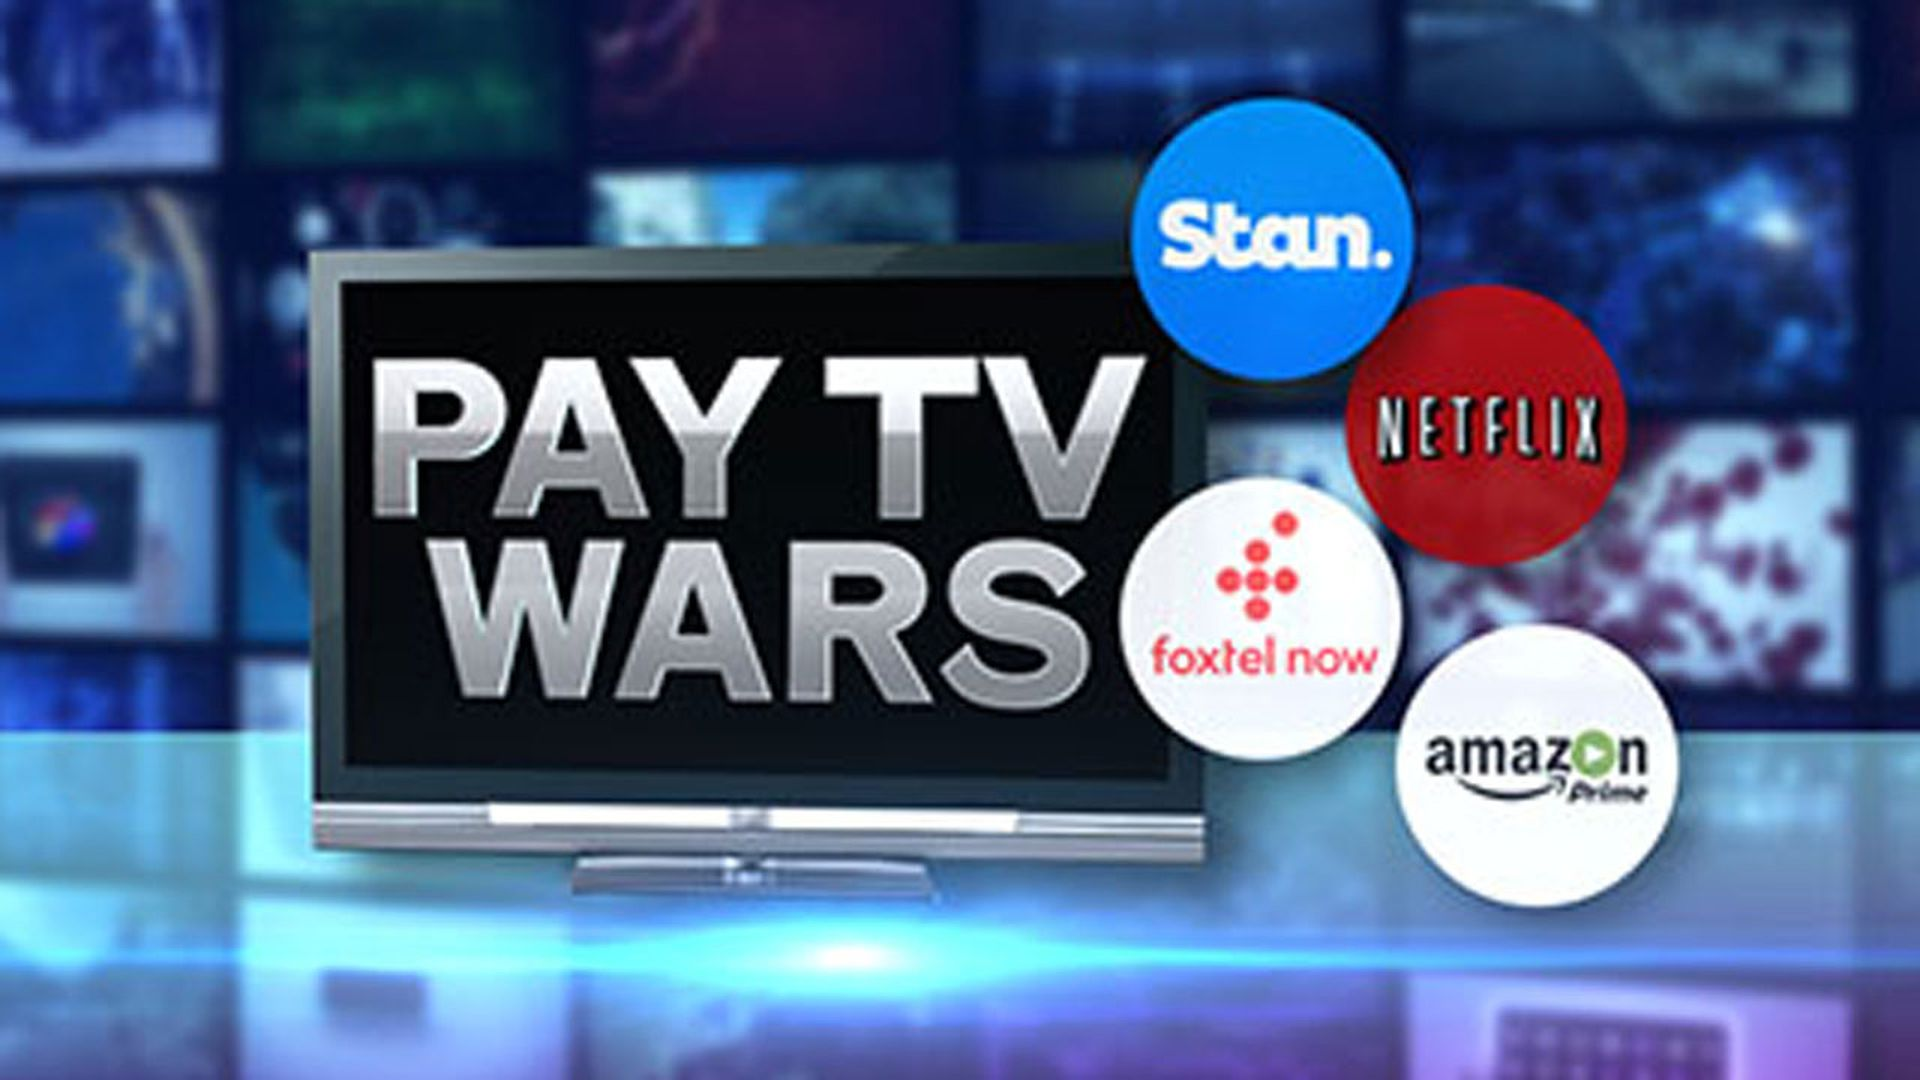 Pay TV wars A Current Affair Extras 2017, Exclusive Content